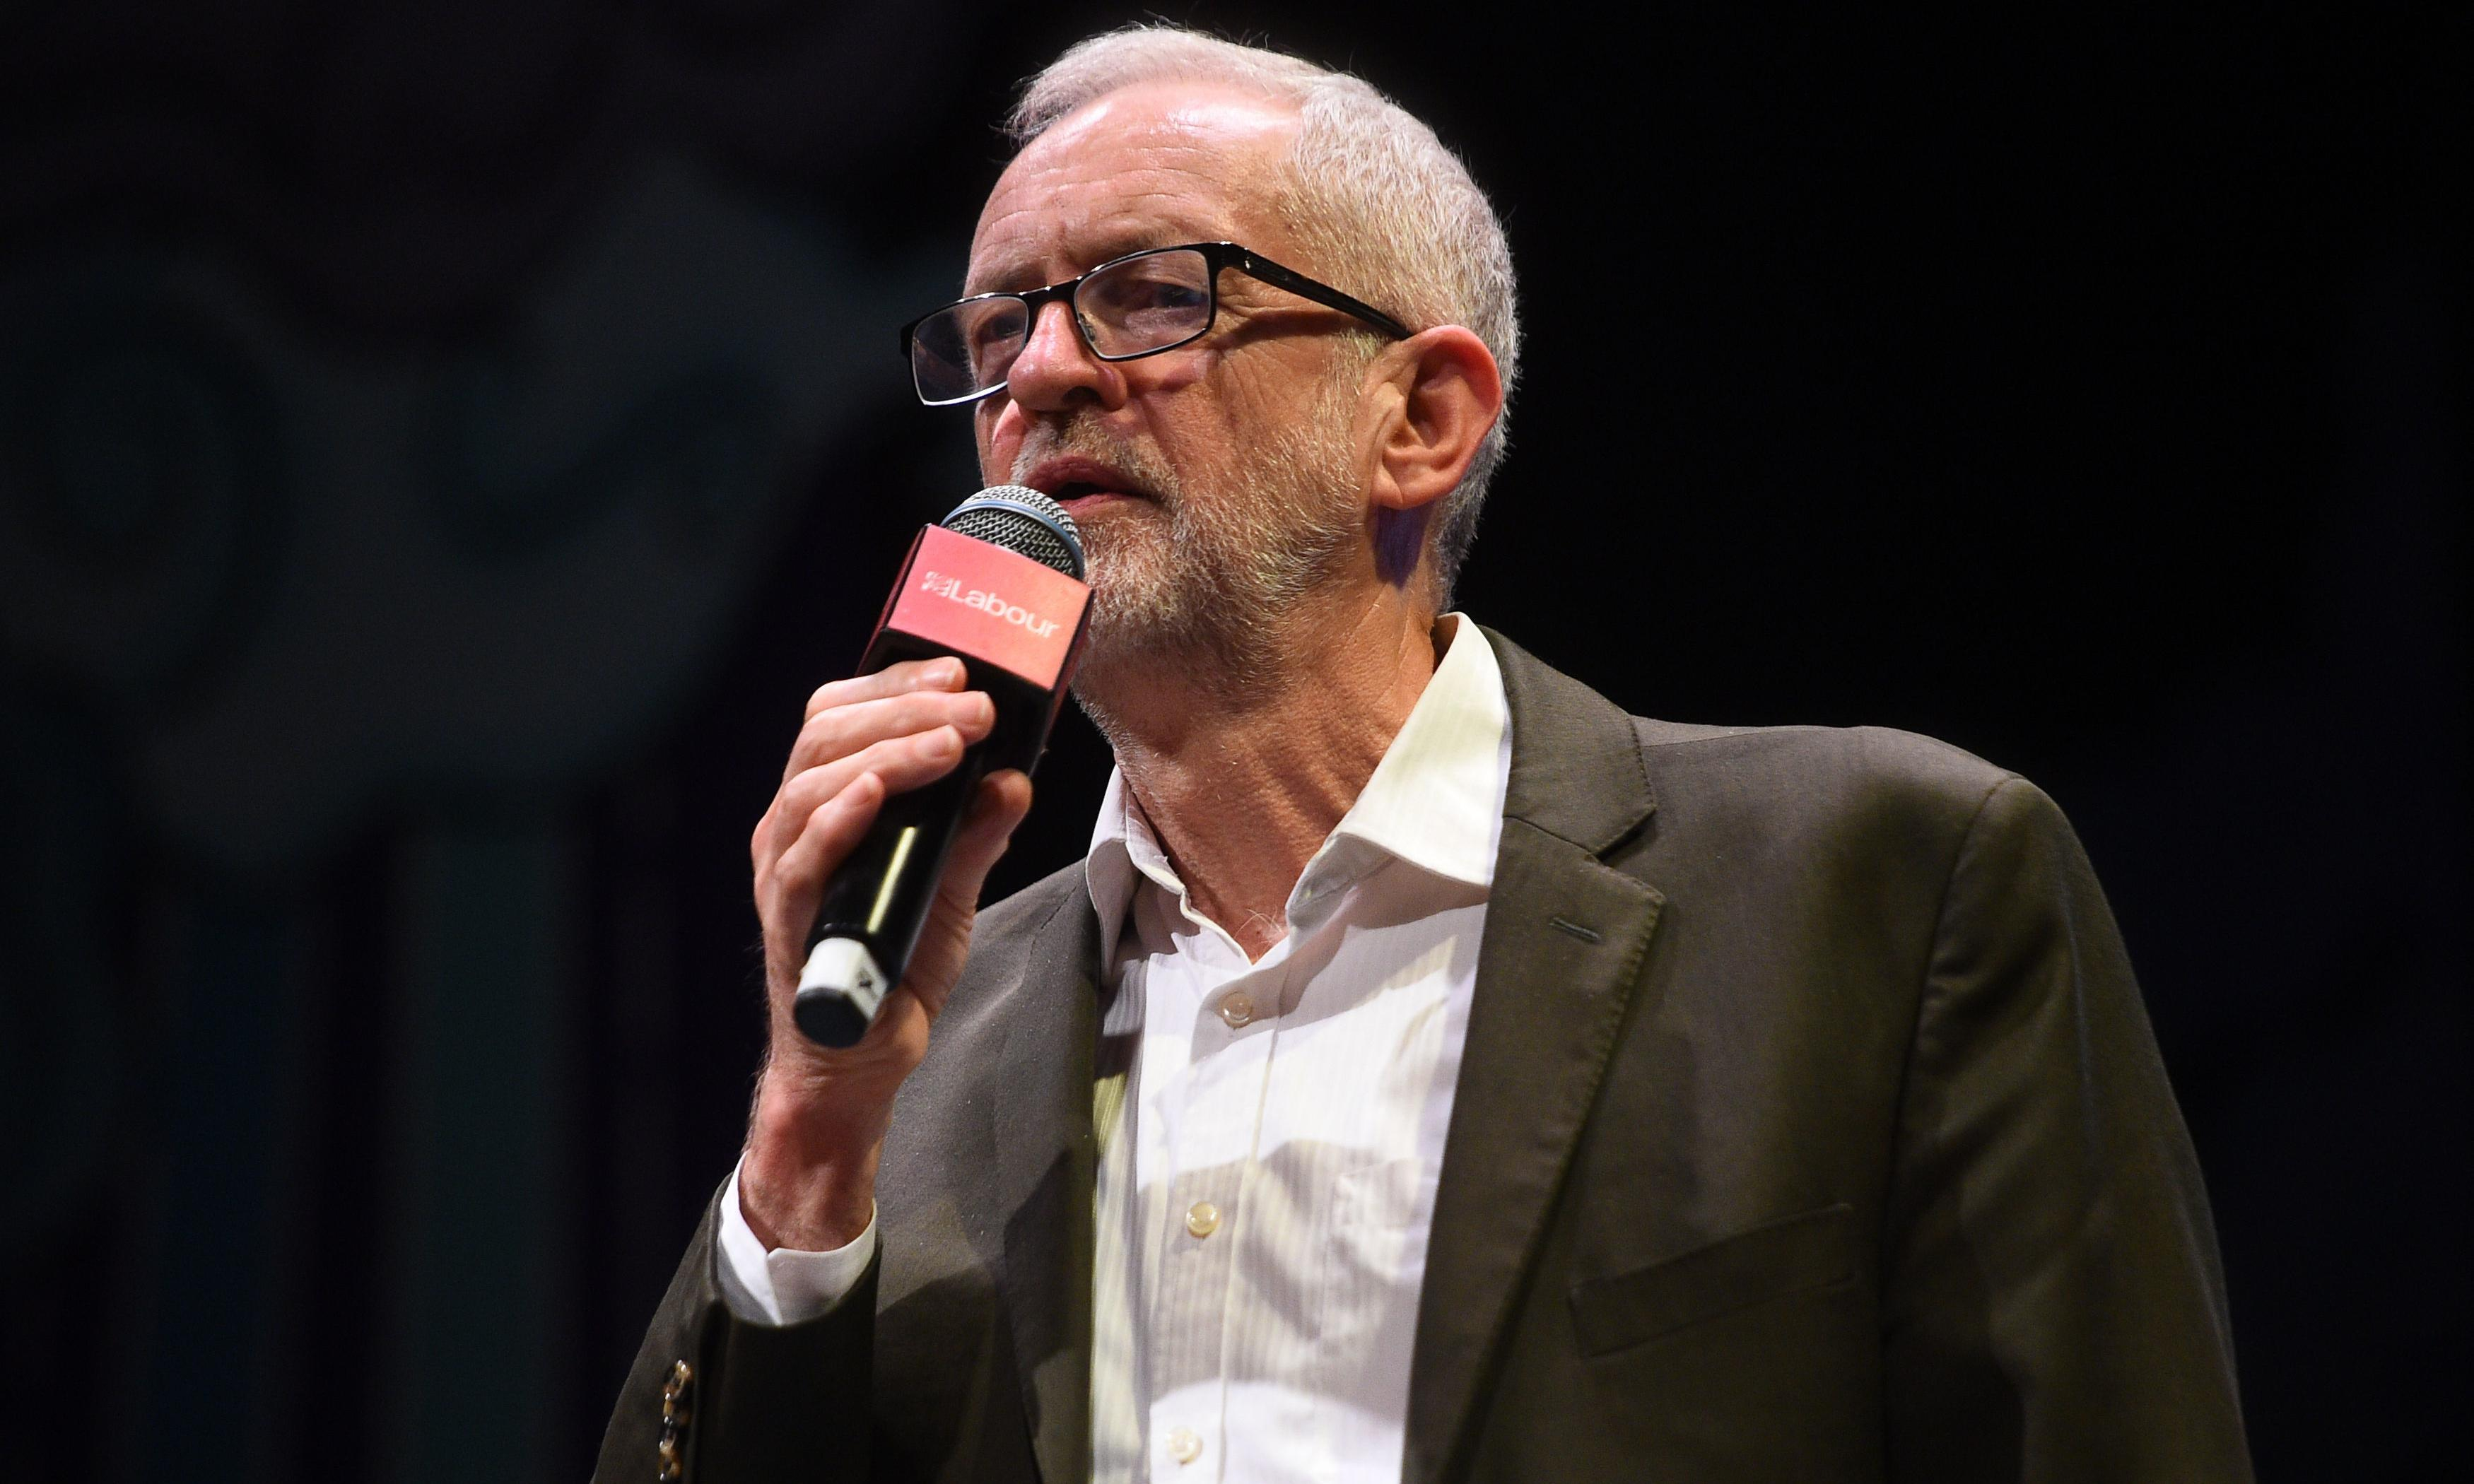 Corbyn: I guarantee libraries will be protected under Labour